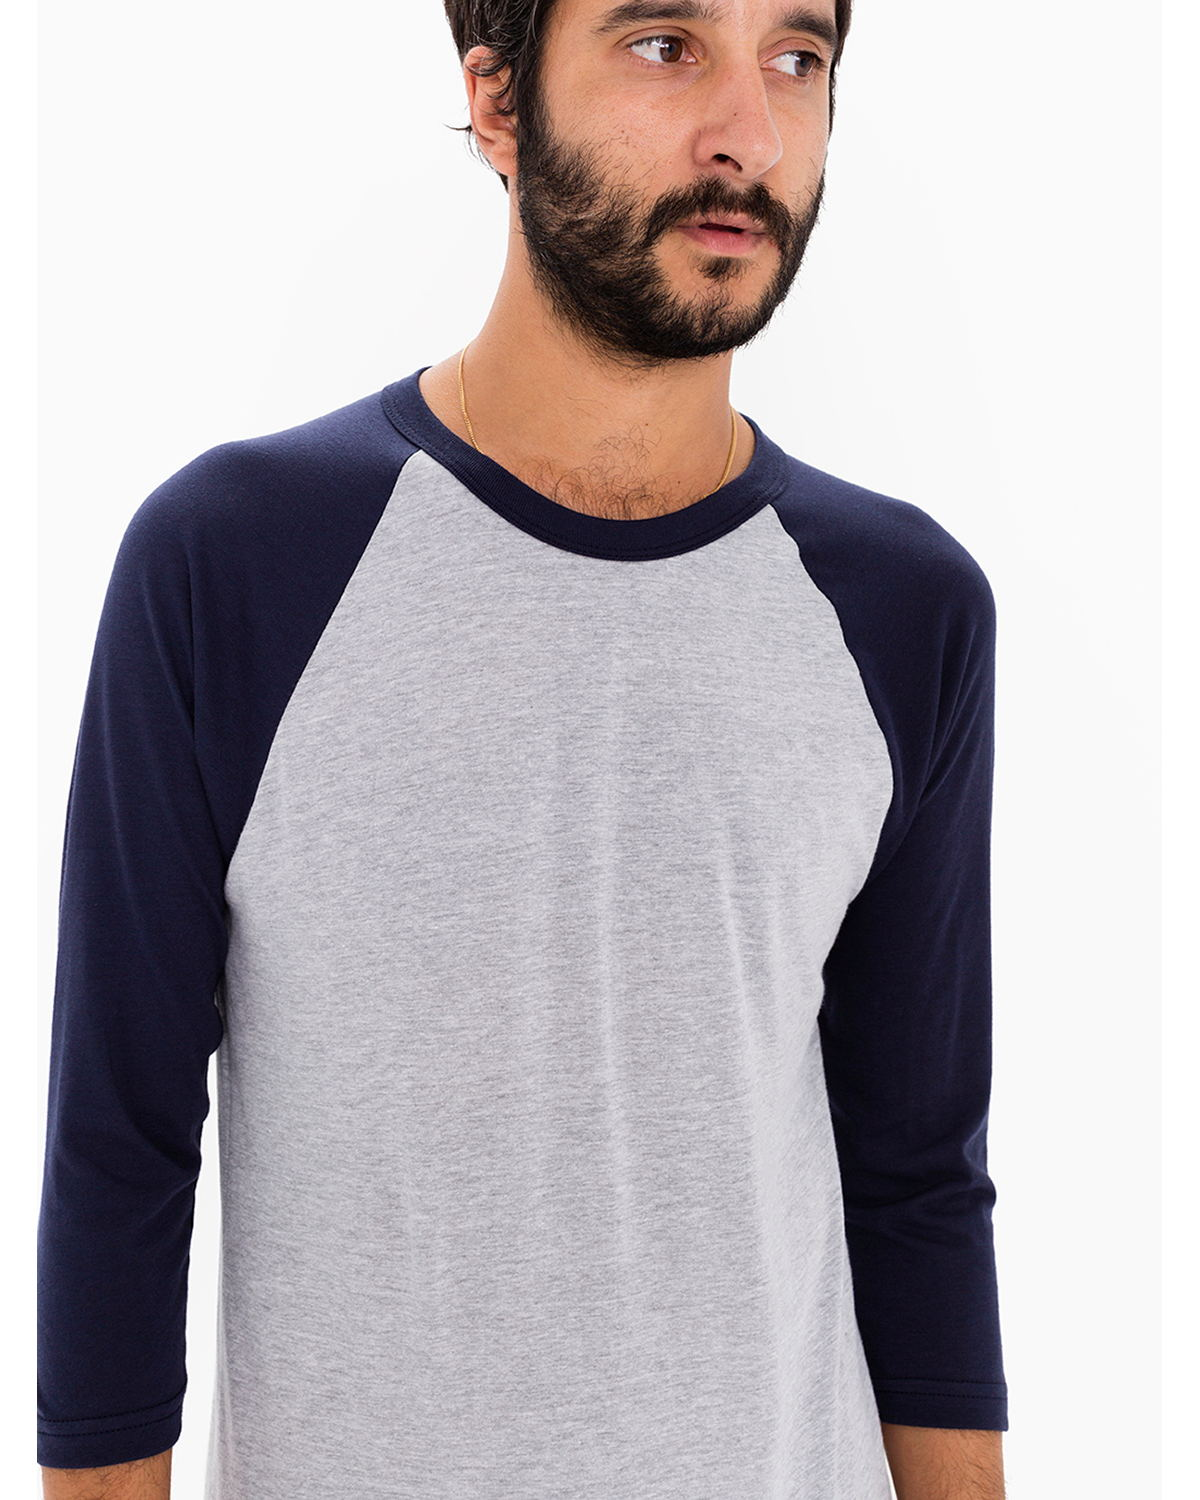 click to view Hthr Grey/ Navy